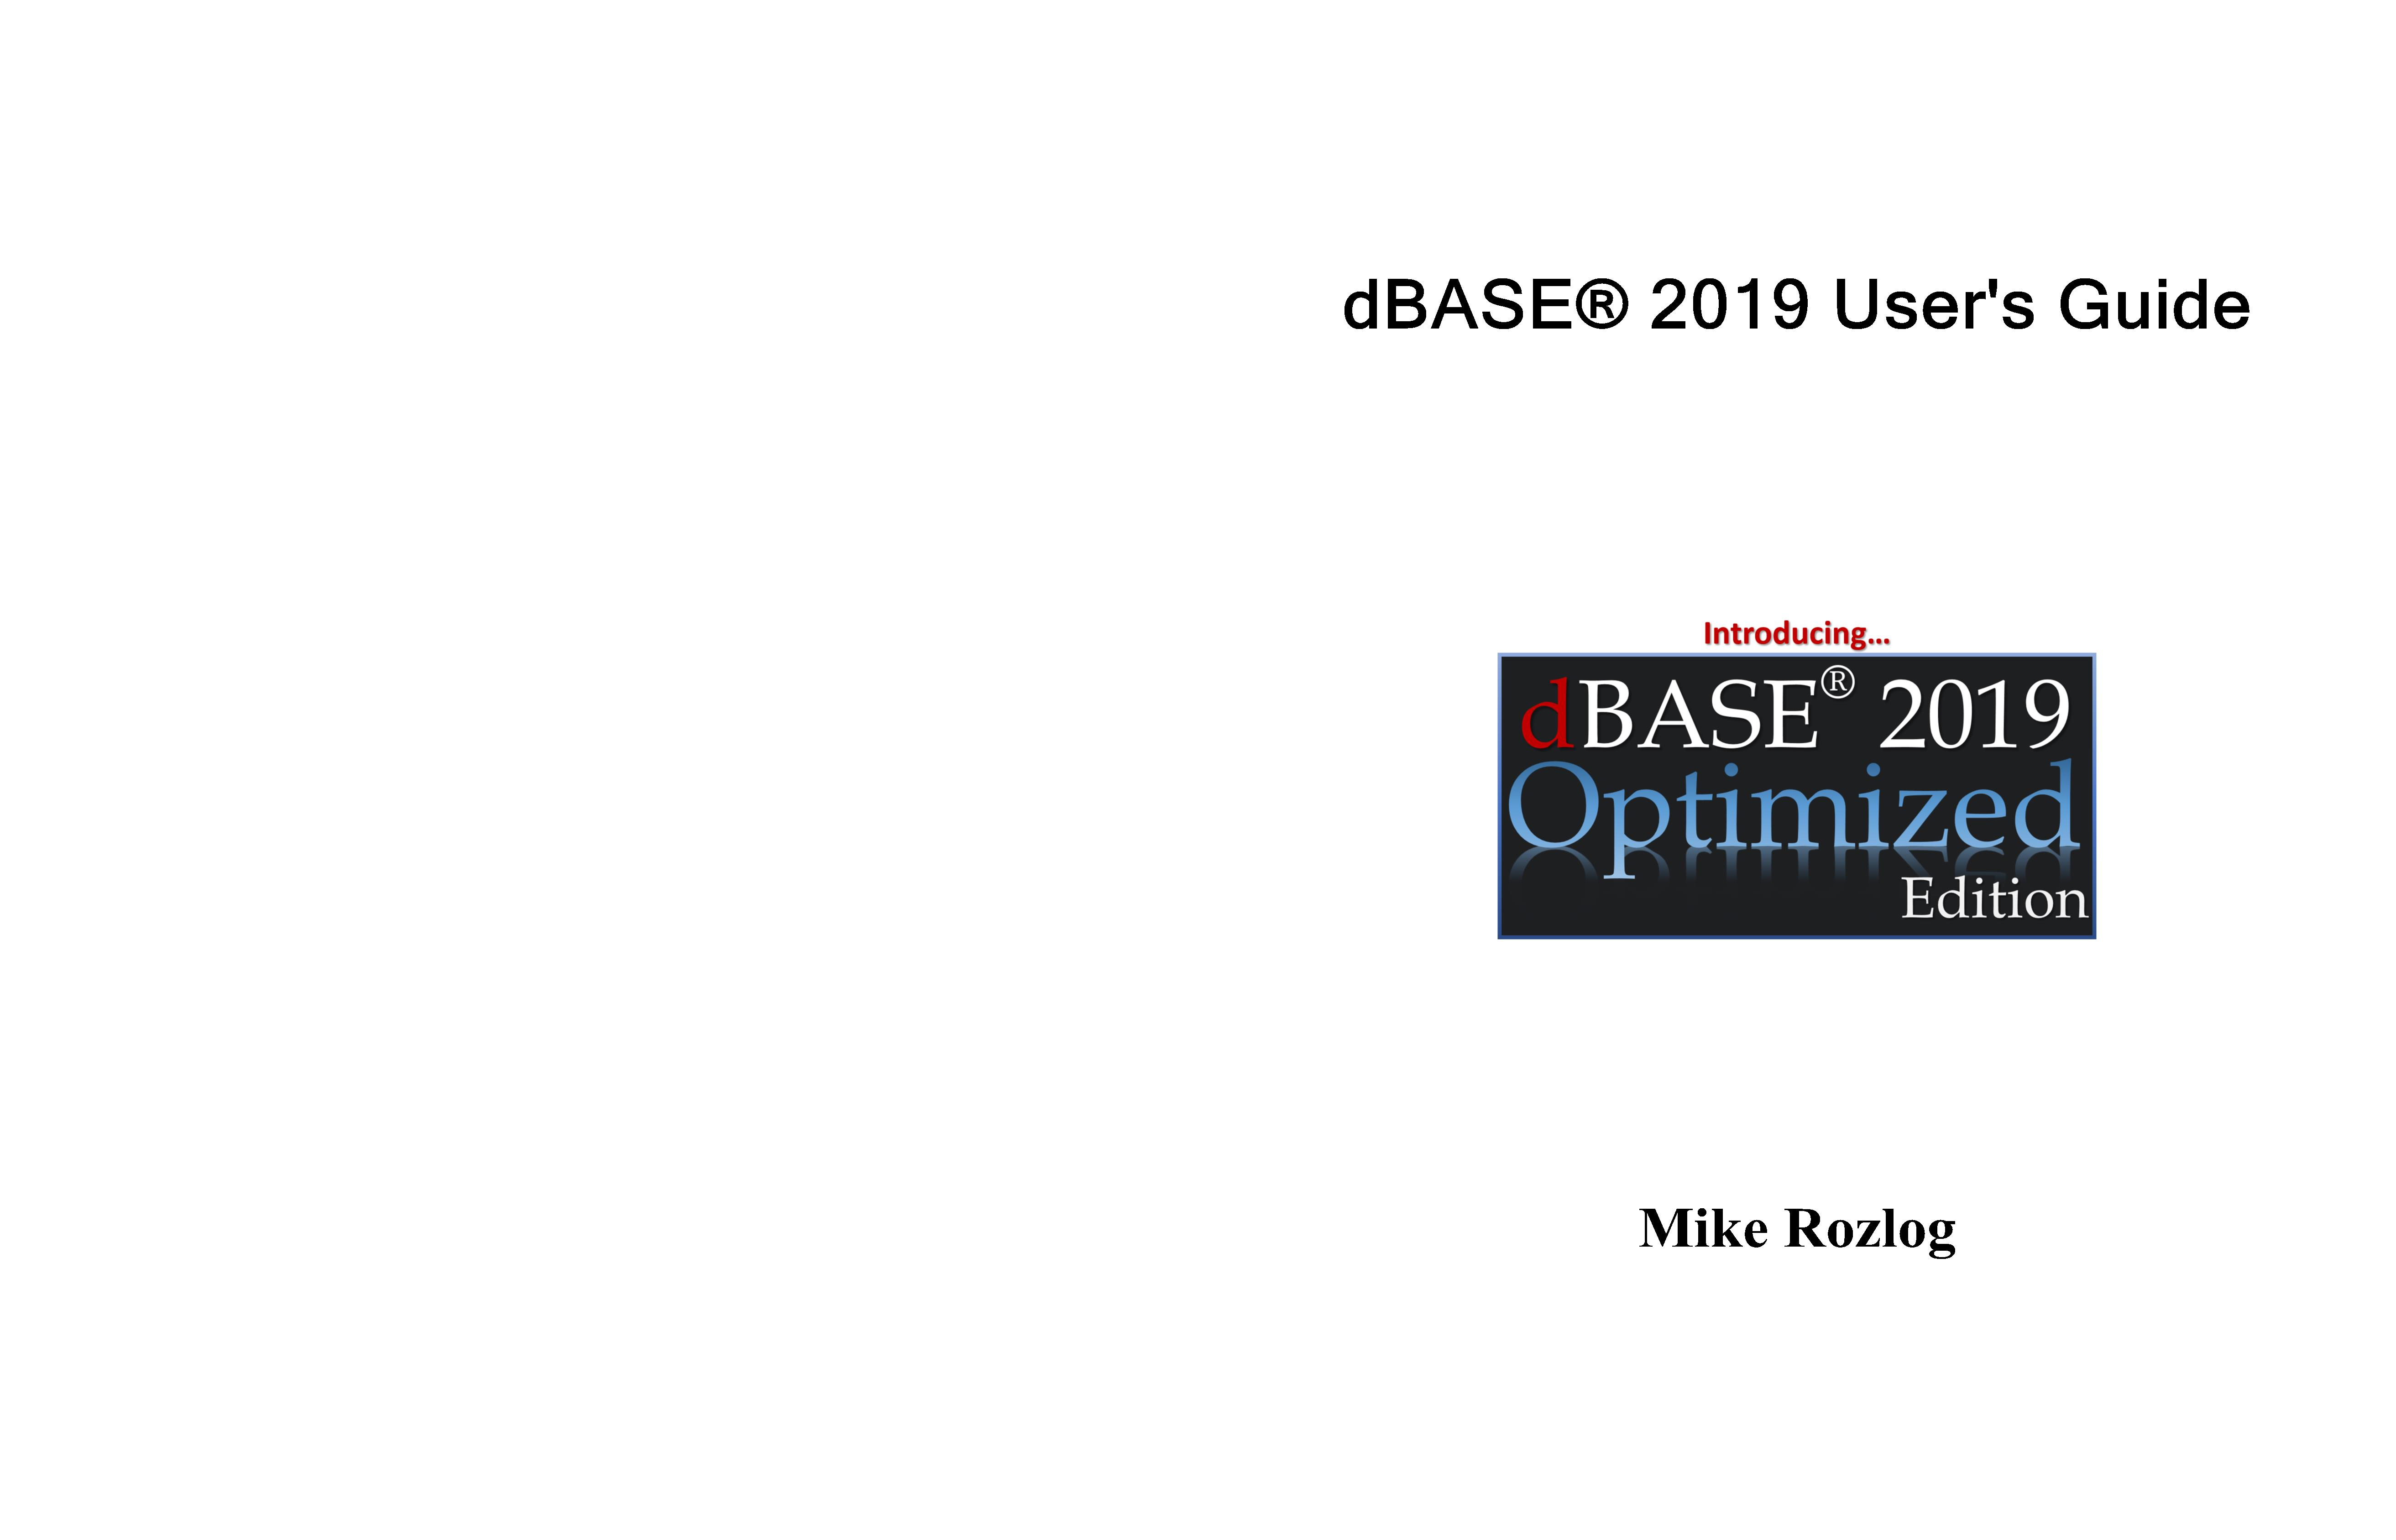 dBASE® 2019 User's Guide by Mike Rozlog : $24 95